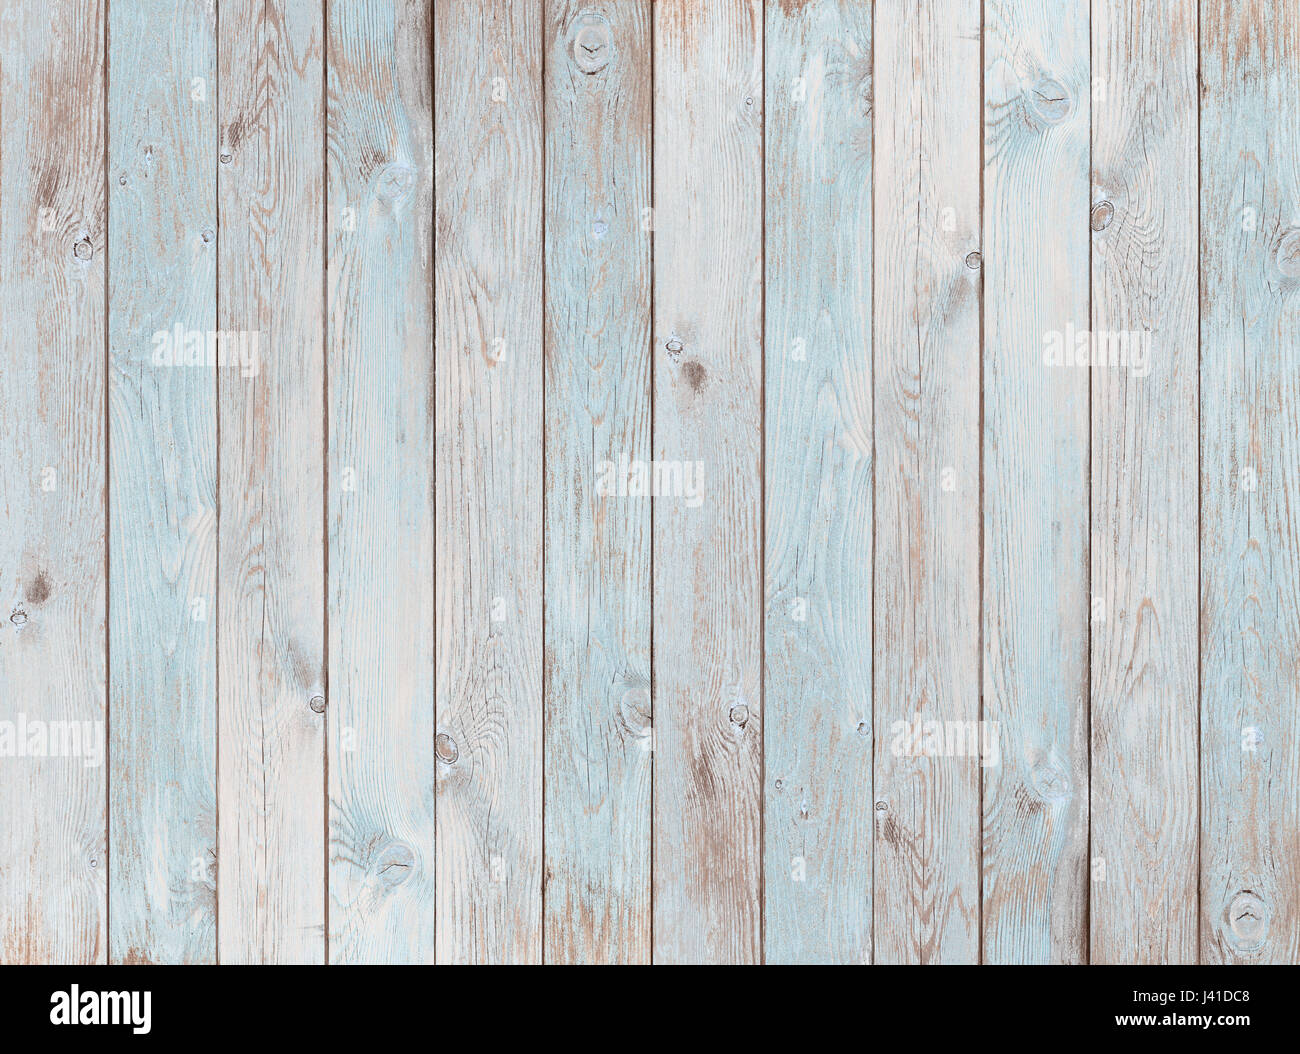 pale blue wood planks texture or background - Stock Image